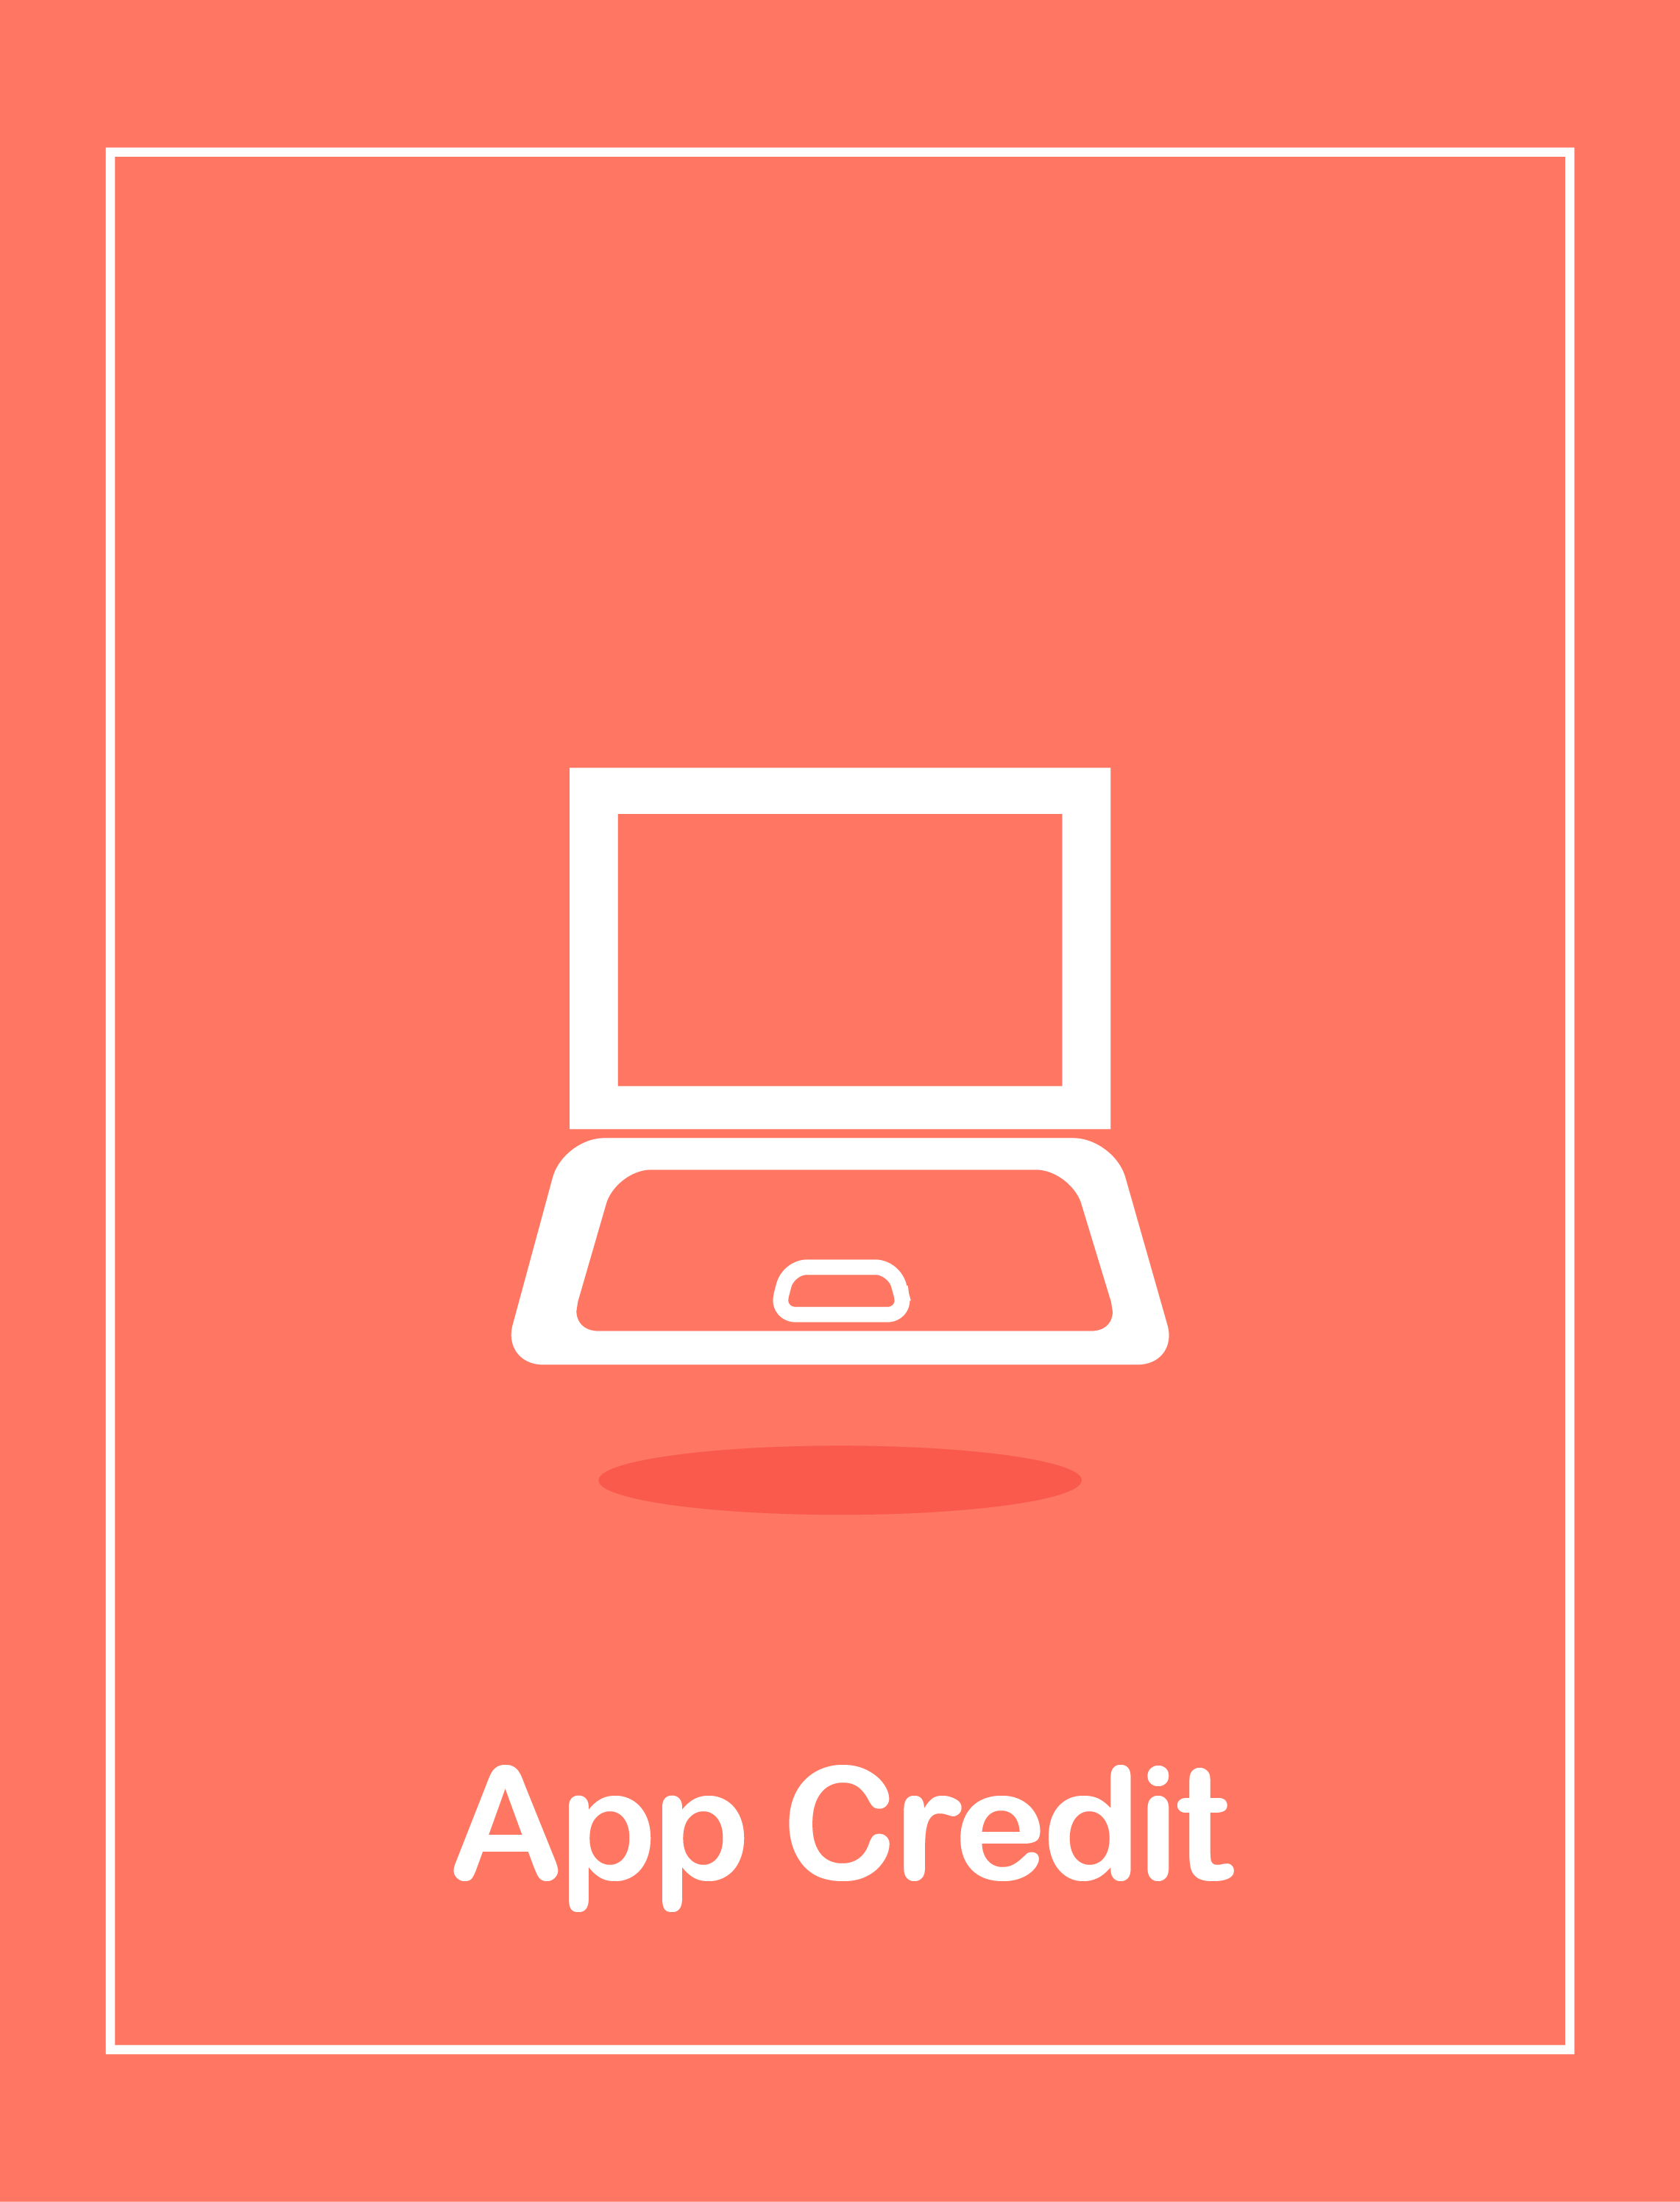 AppCredit